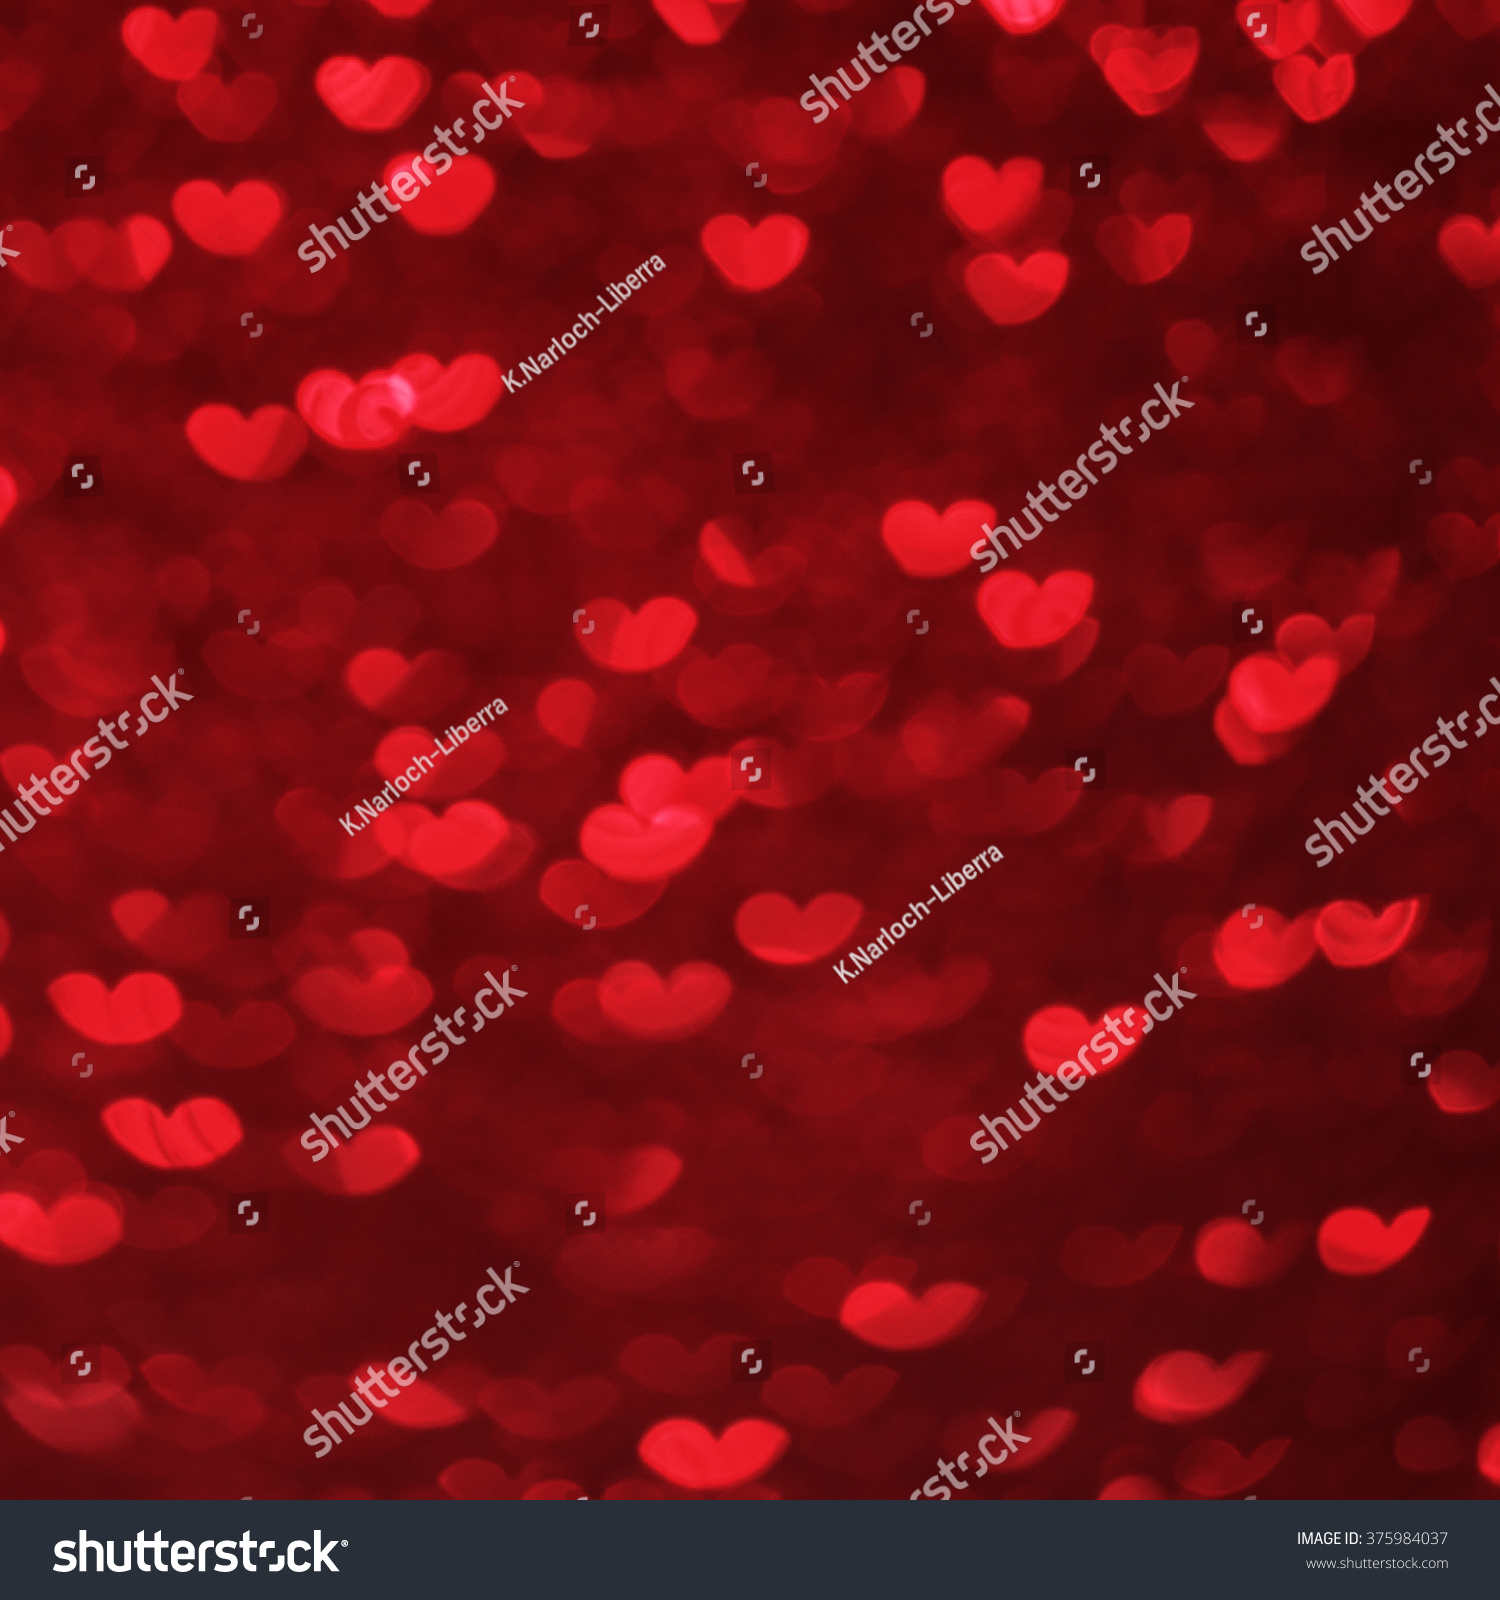 Hearts Bokeh Background Valentine's day background